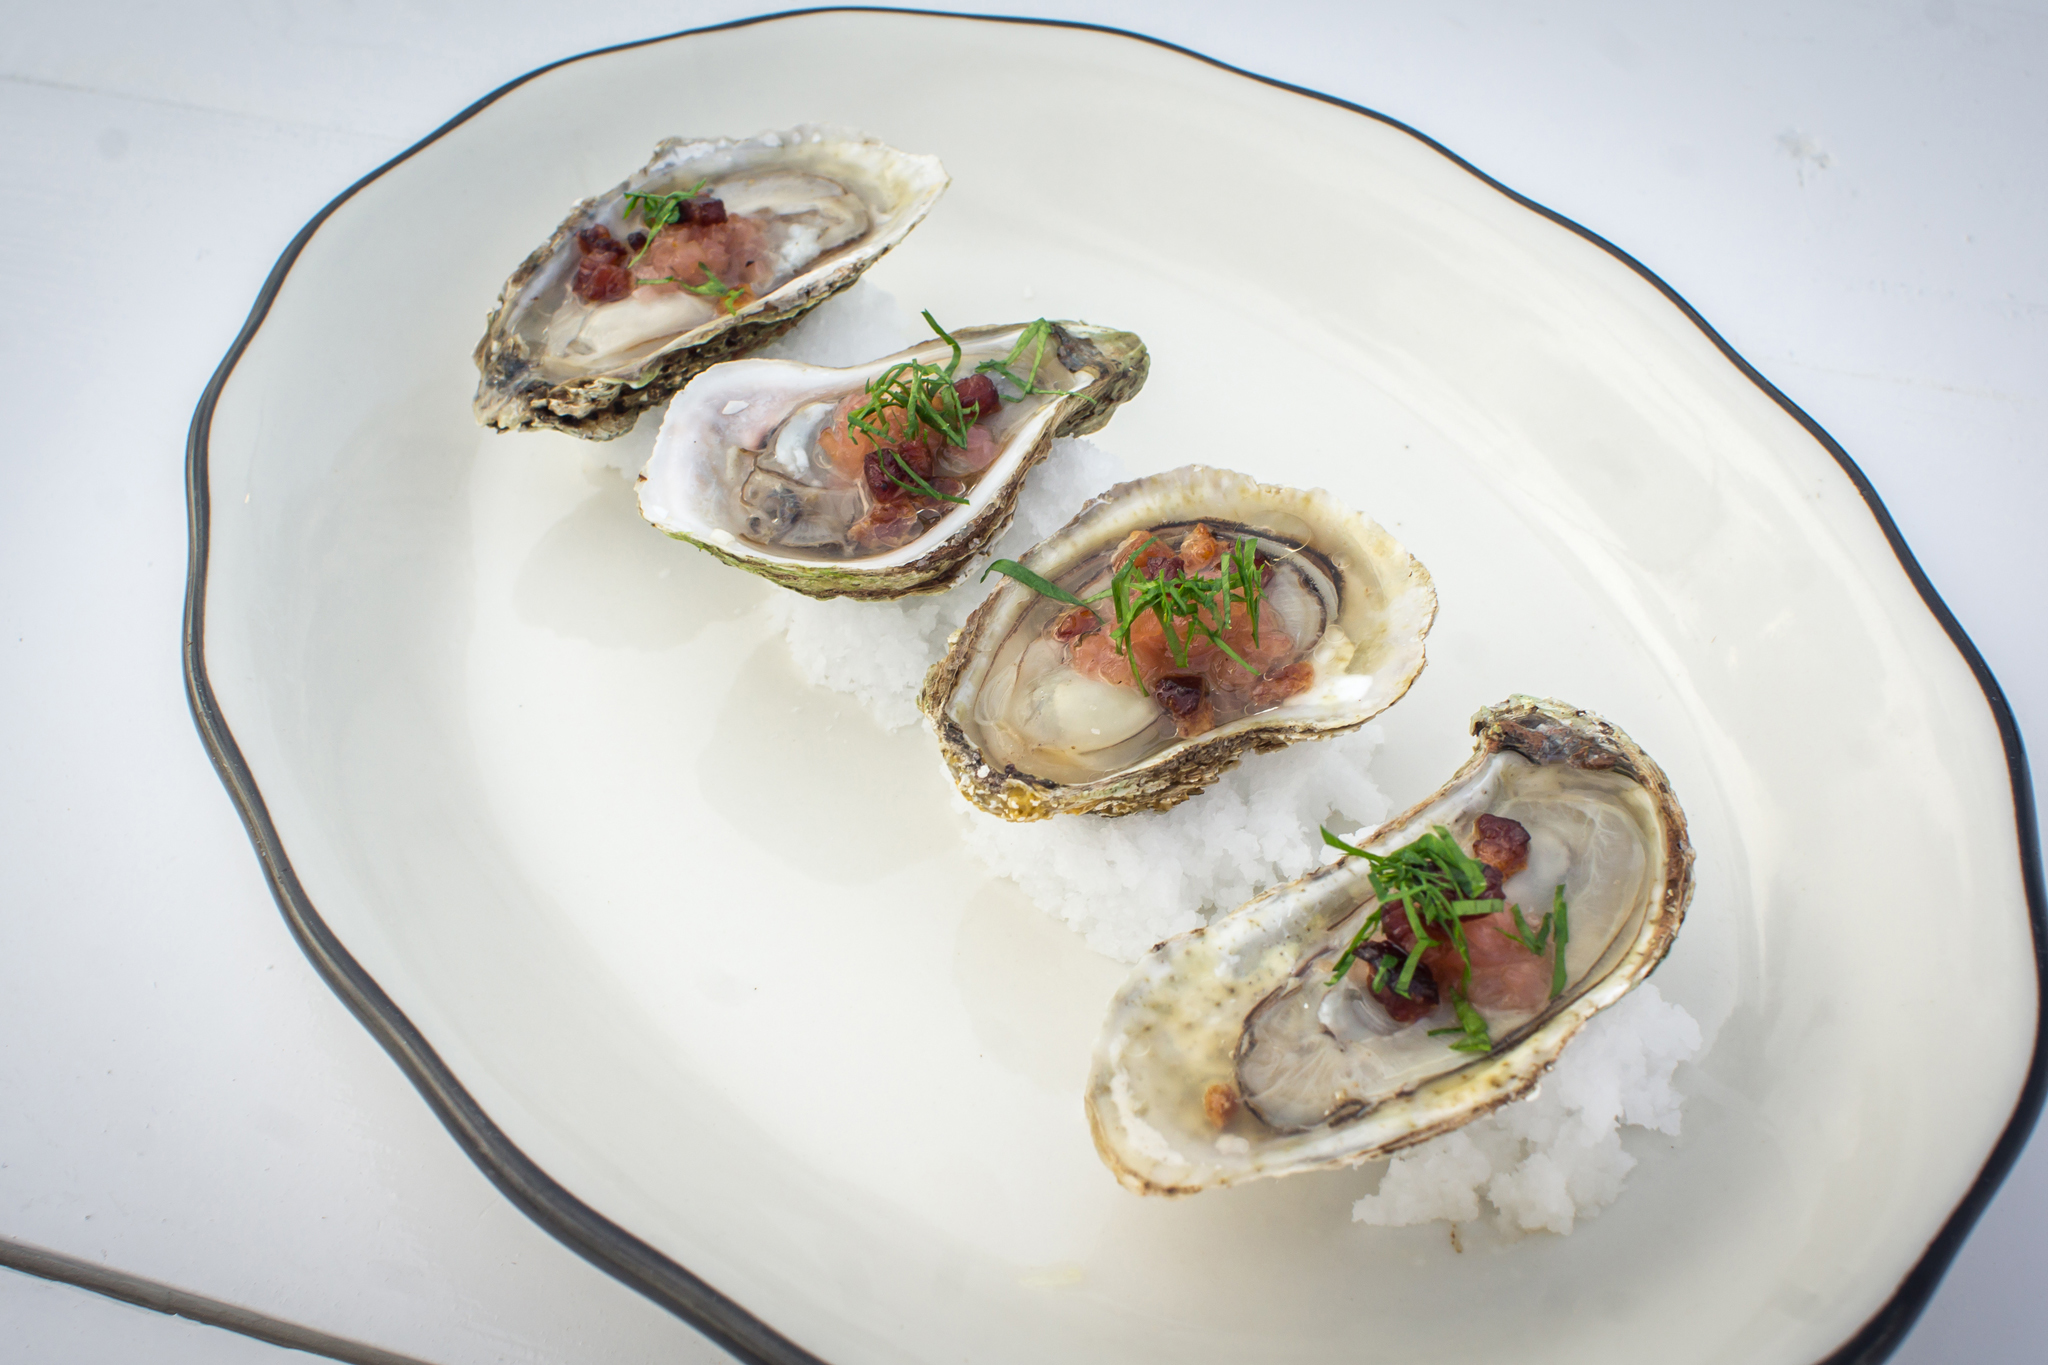 GRAND BANKS baked oysters